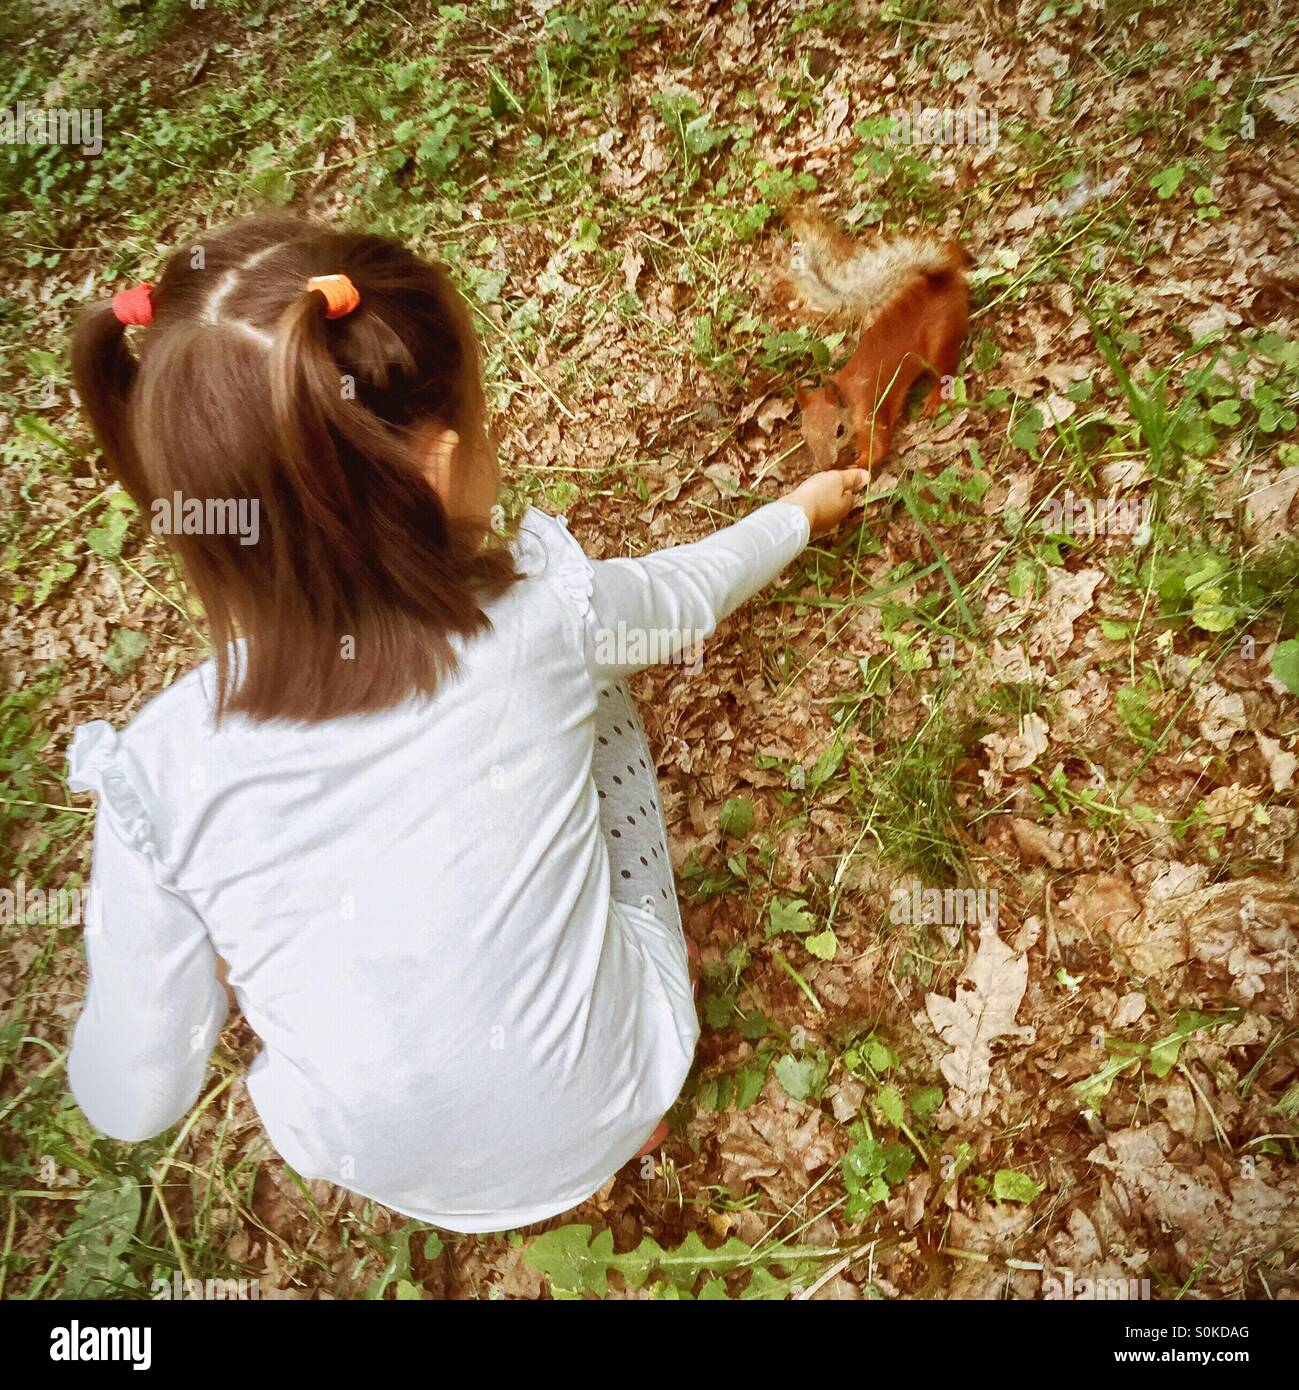 Little 5 year old girl feeding the red squirrel - Stock Image